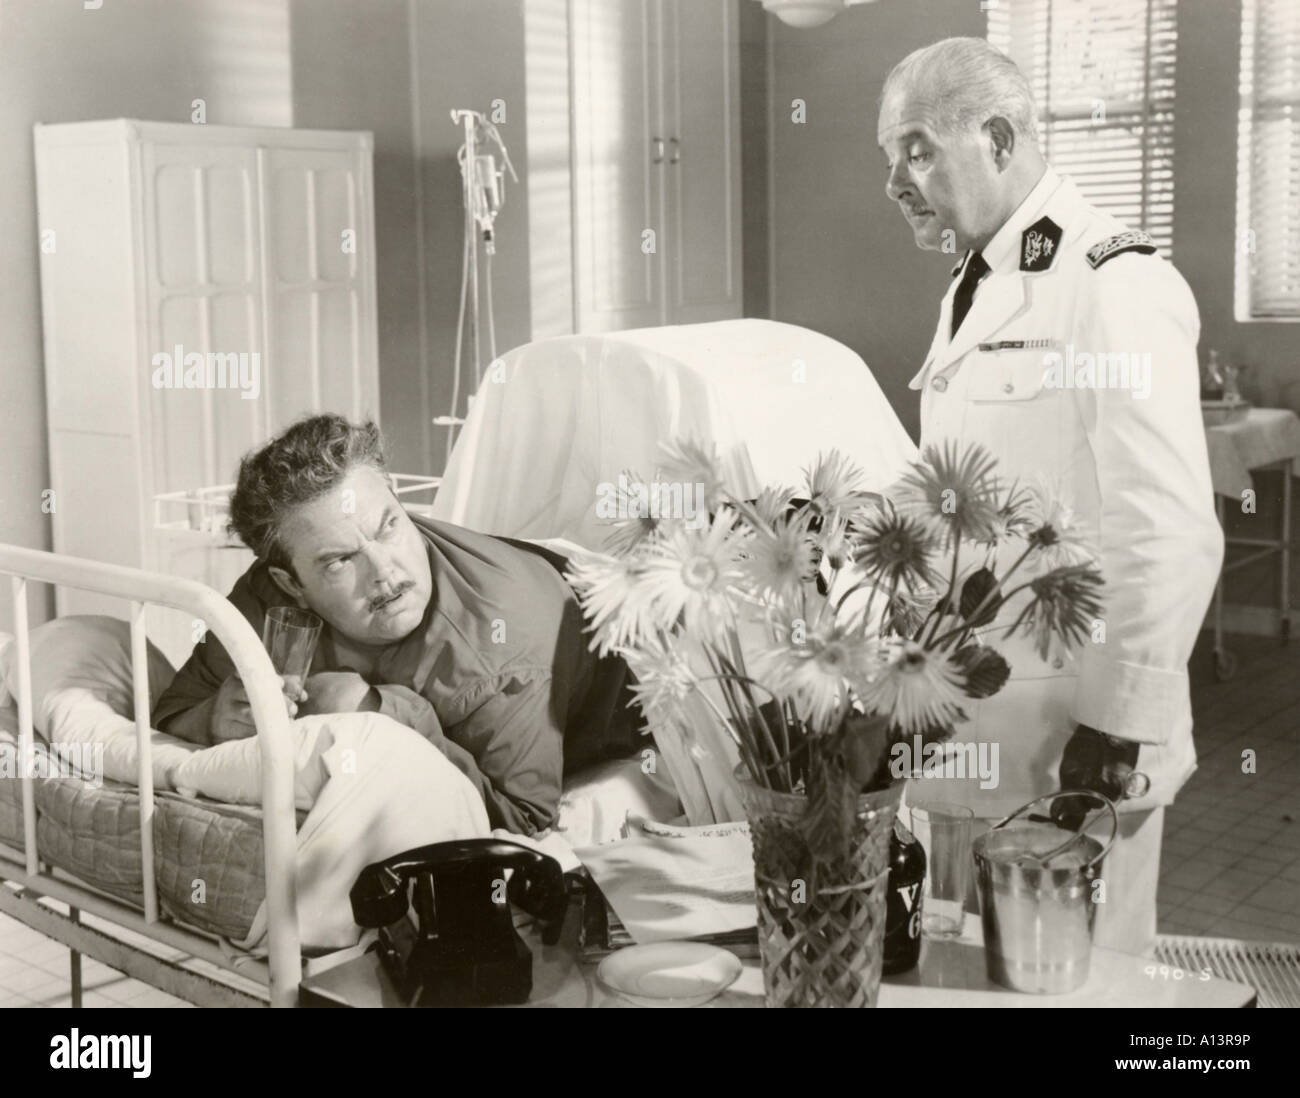 The Roots Of Heaven Year 1958 Director John Huston Orson Welles Based upon Romain Gary s book Stock Photo